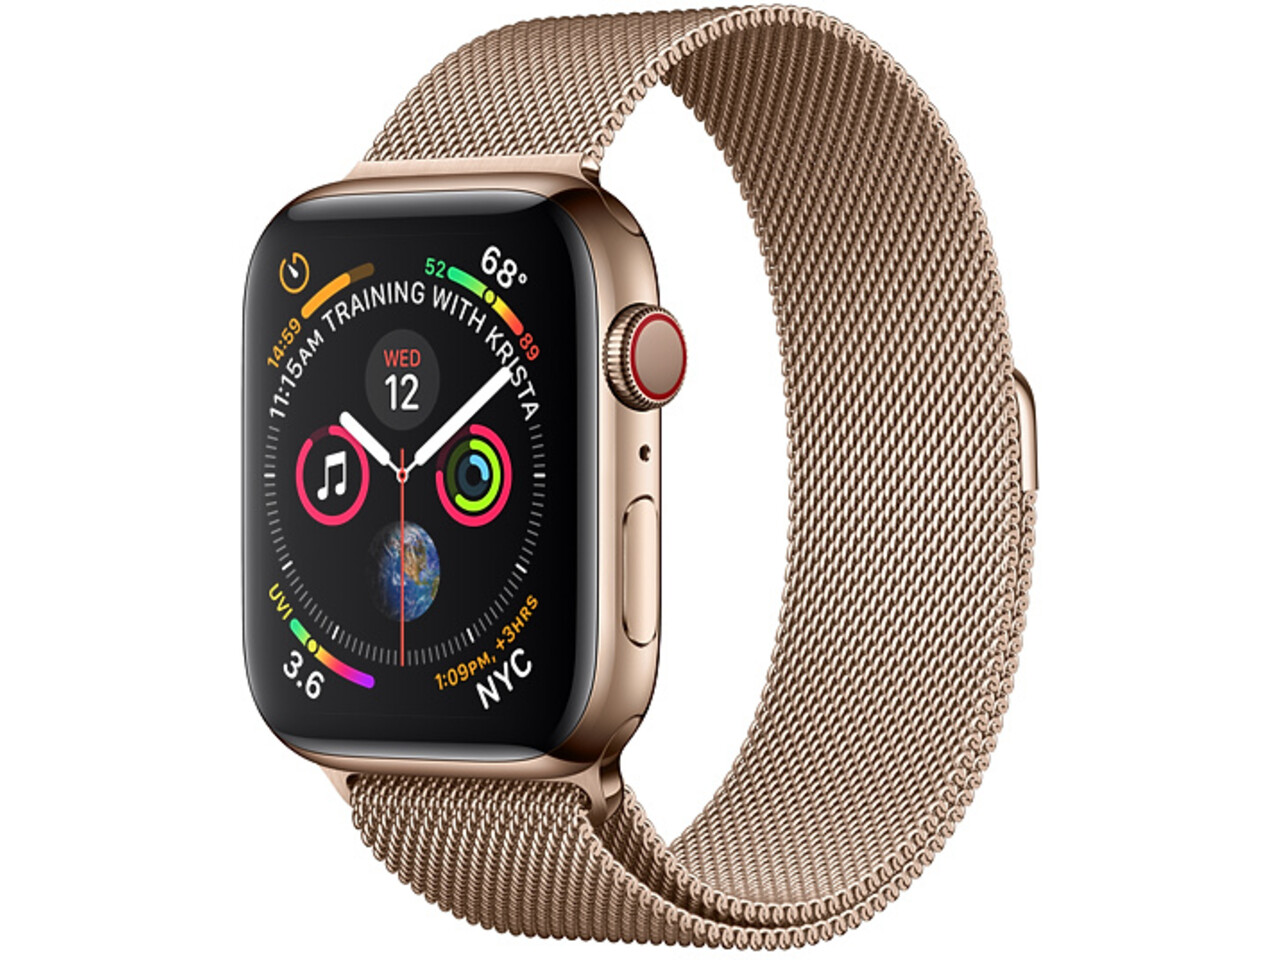 apple watch series 4 cellular 44mm gold stainless steel gold milanese loop